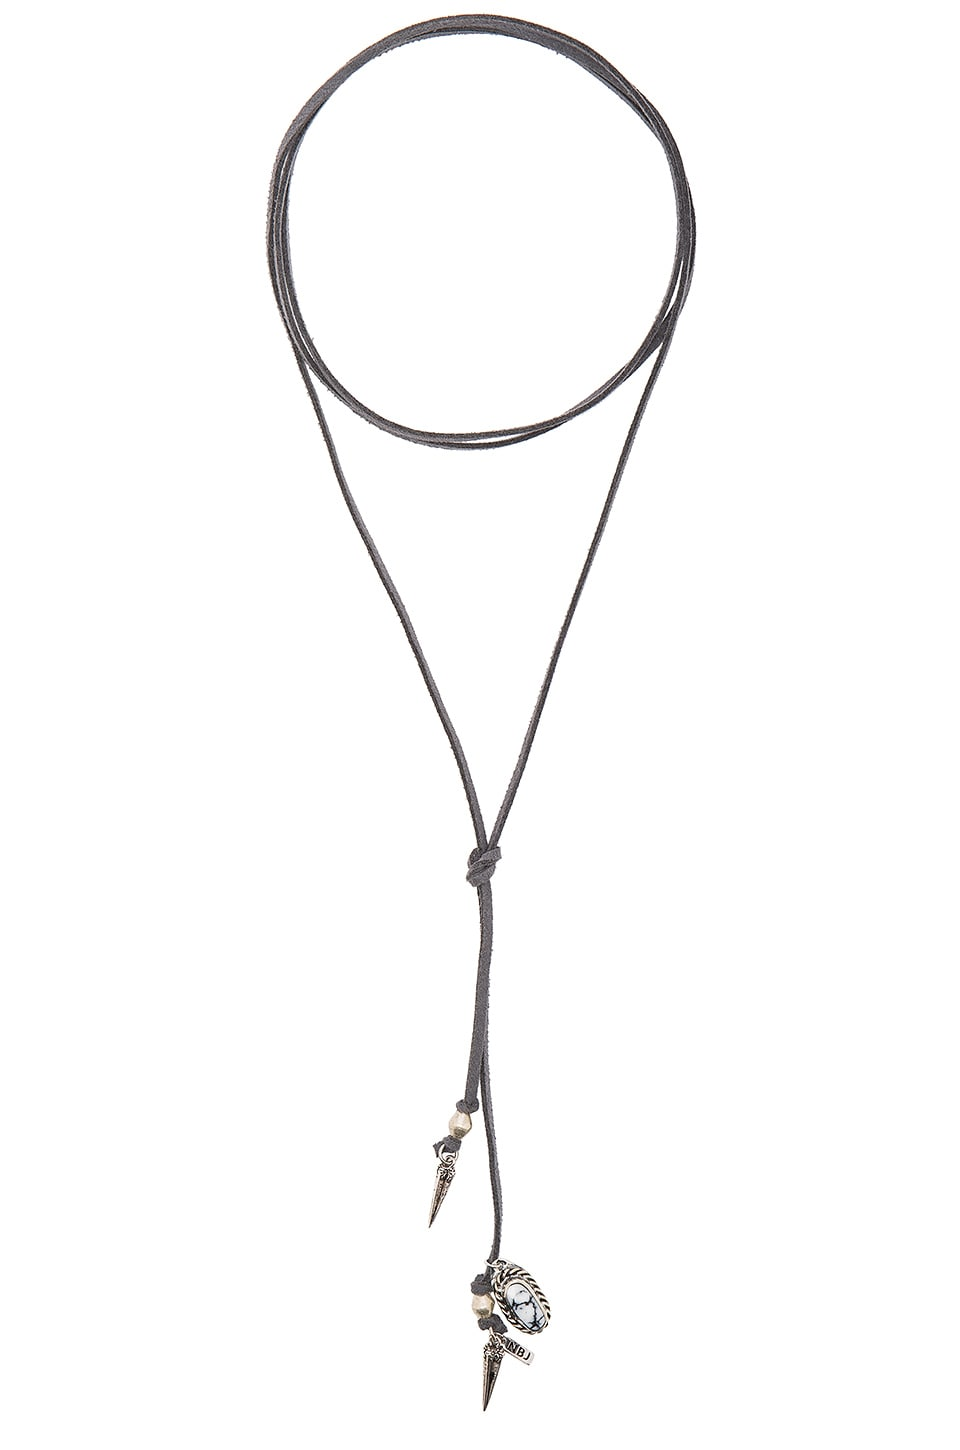 Natalie B Jewelry Roadie Wrap Necklace in Grey & Silver Hardware with White Marble